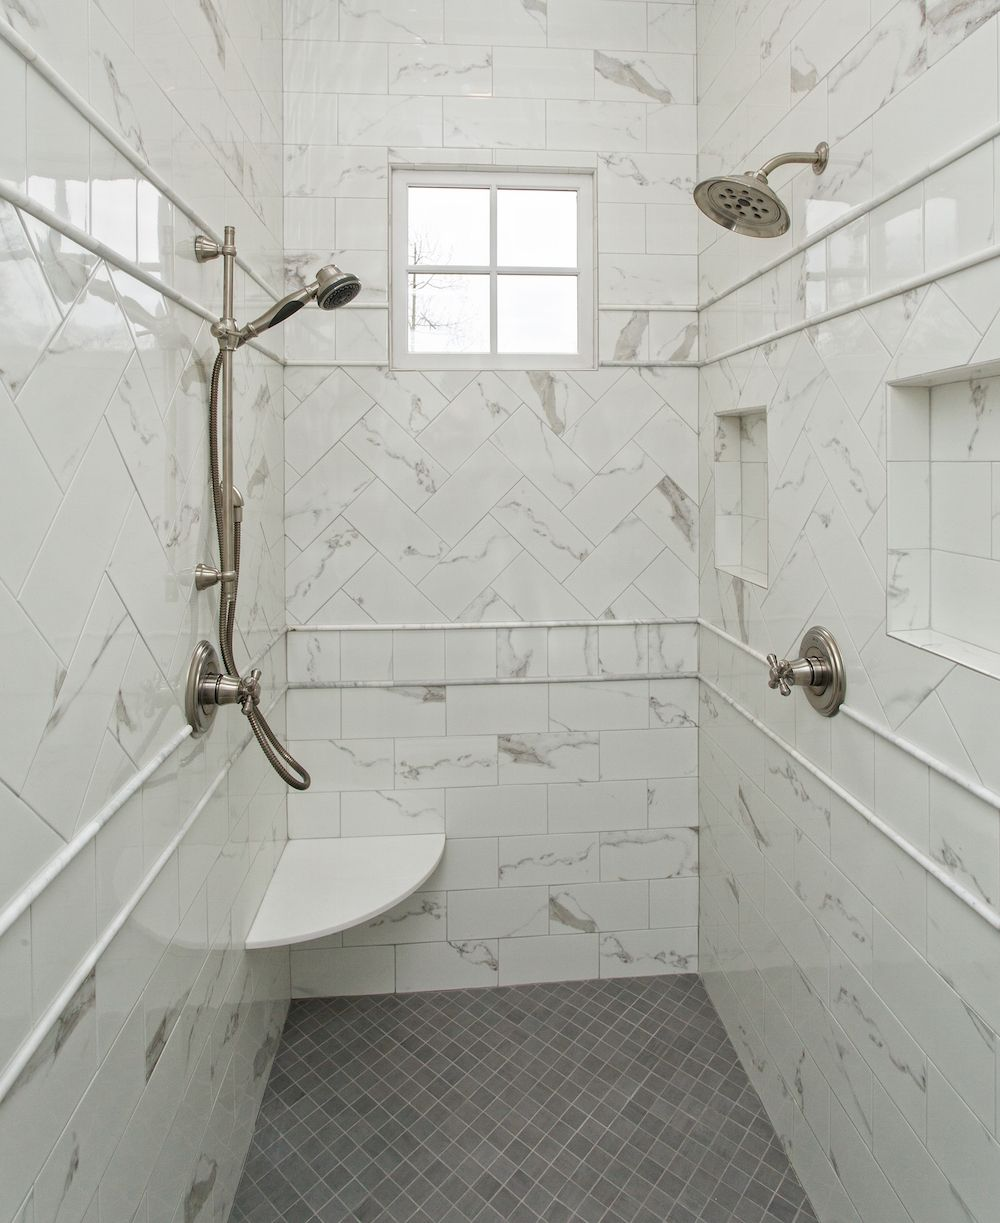 Bathroom Fixtures Greenville Sc gorgeous walk in shower in the master bathroom of this custom